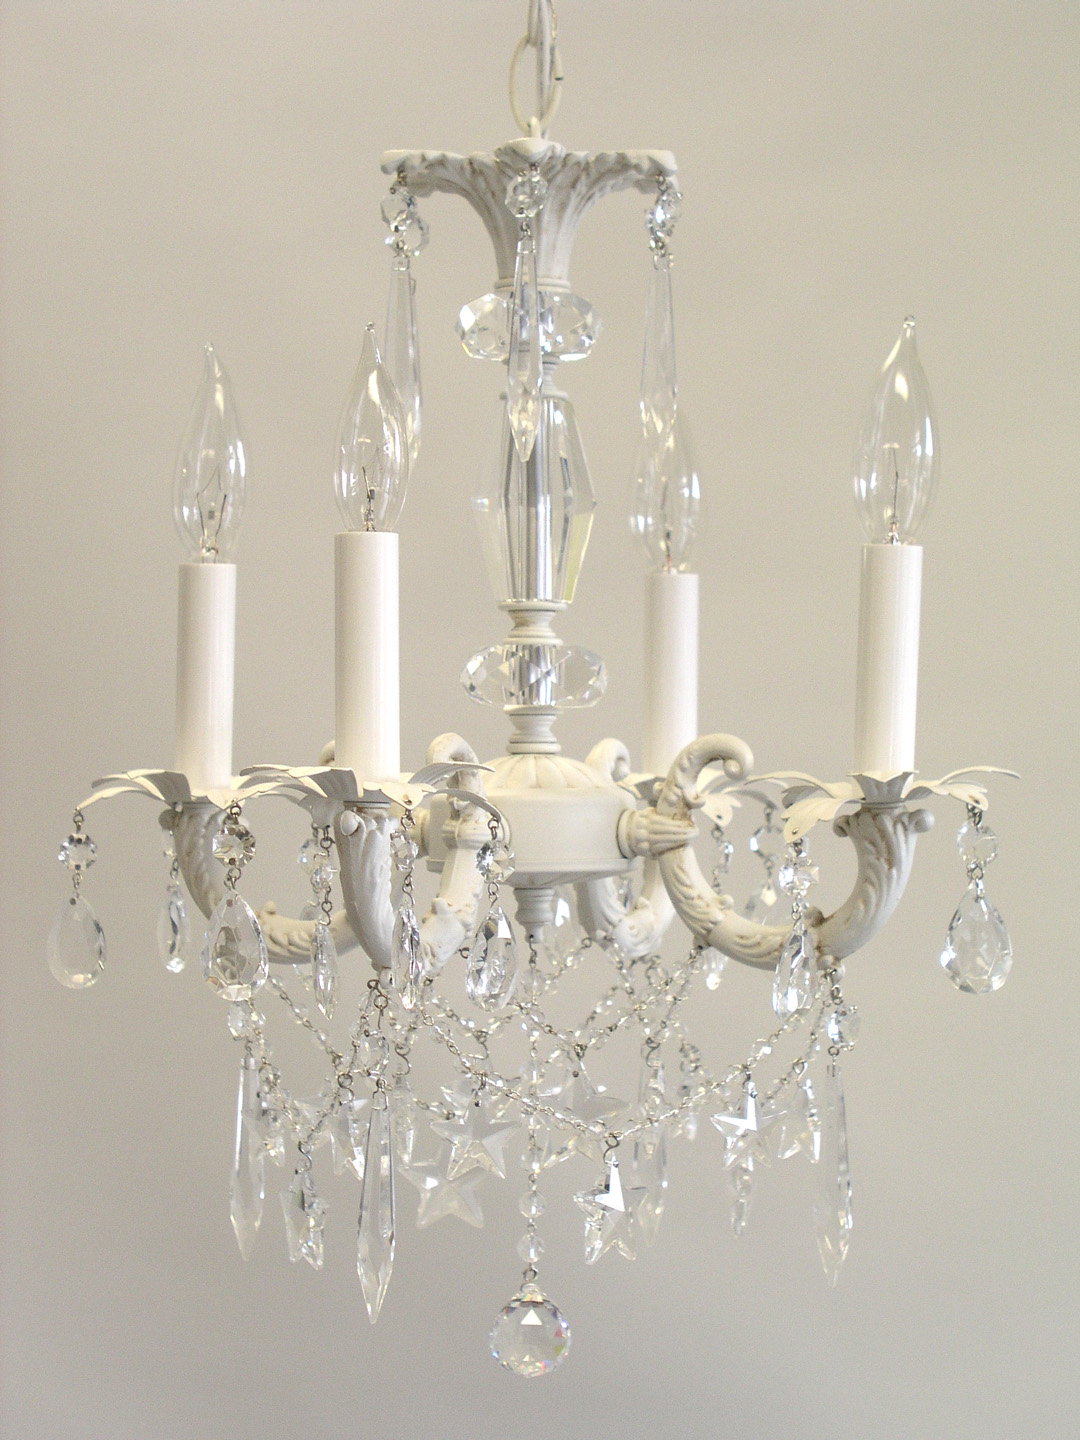 more shabby chic style chandeliers, Lighting ideas